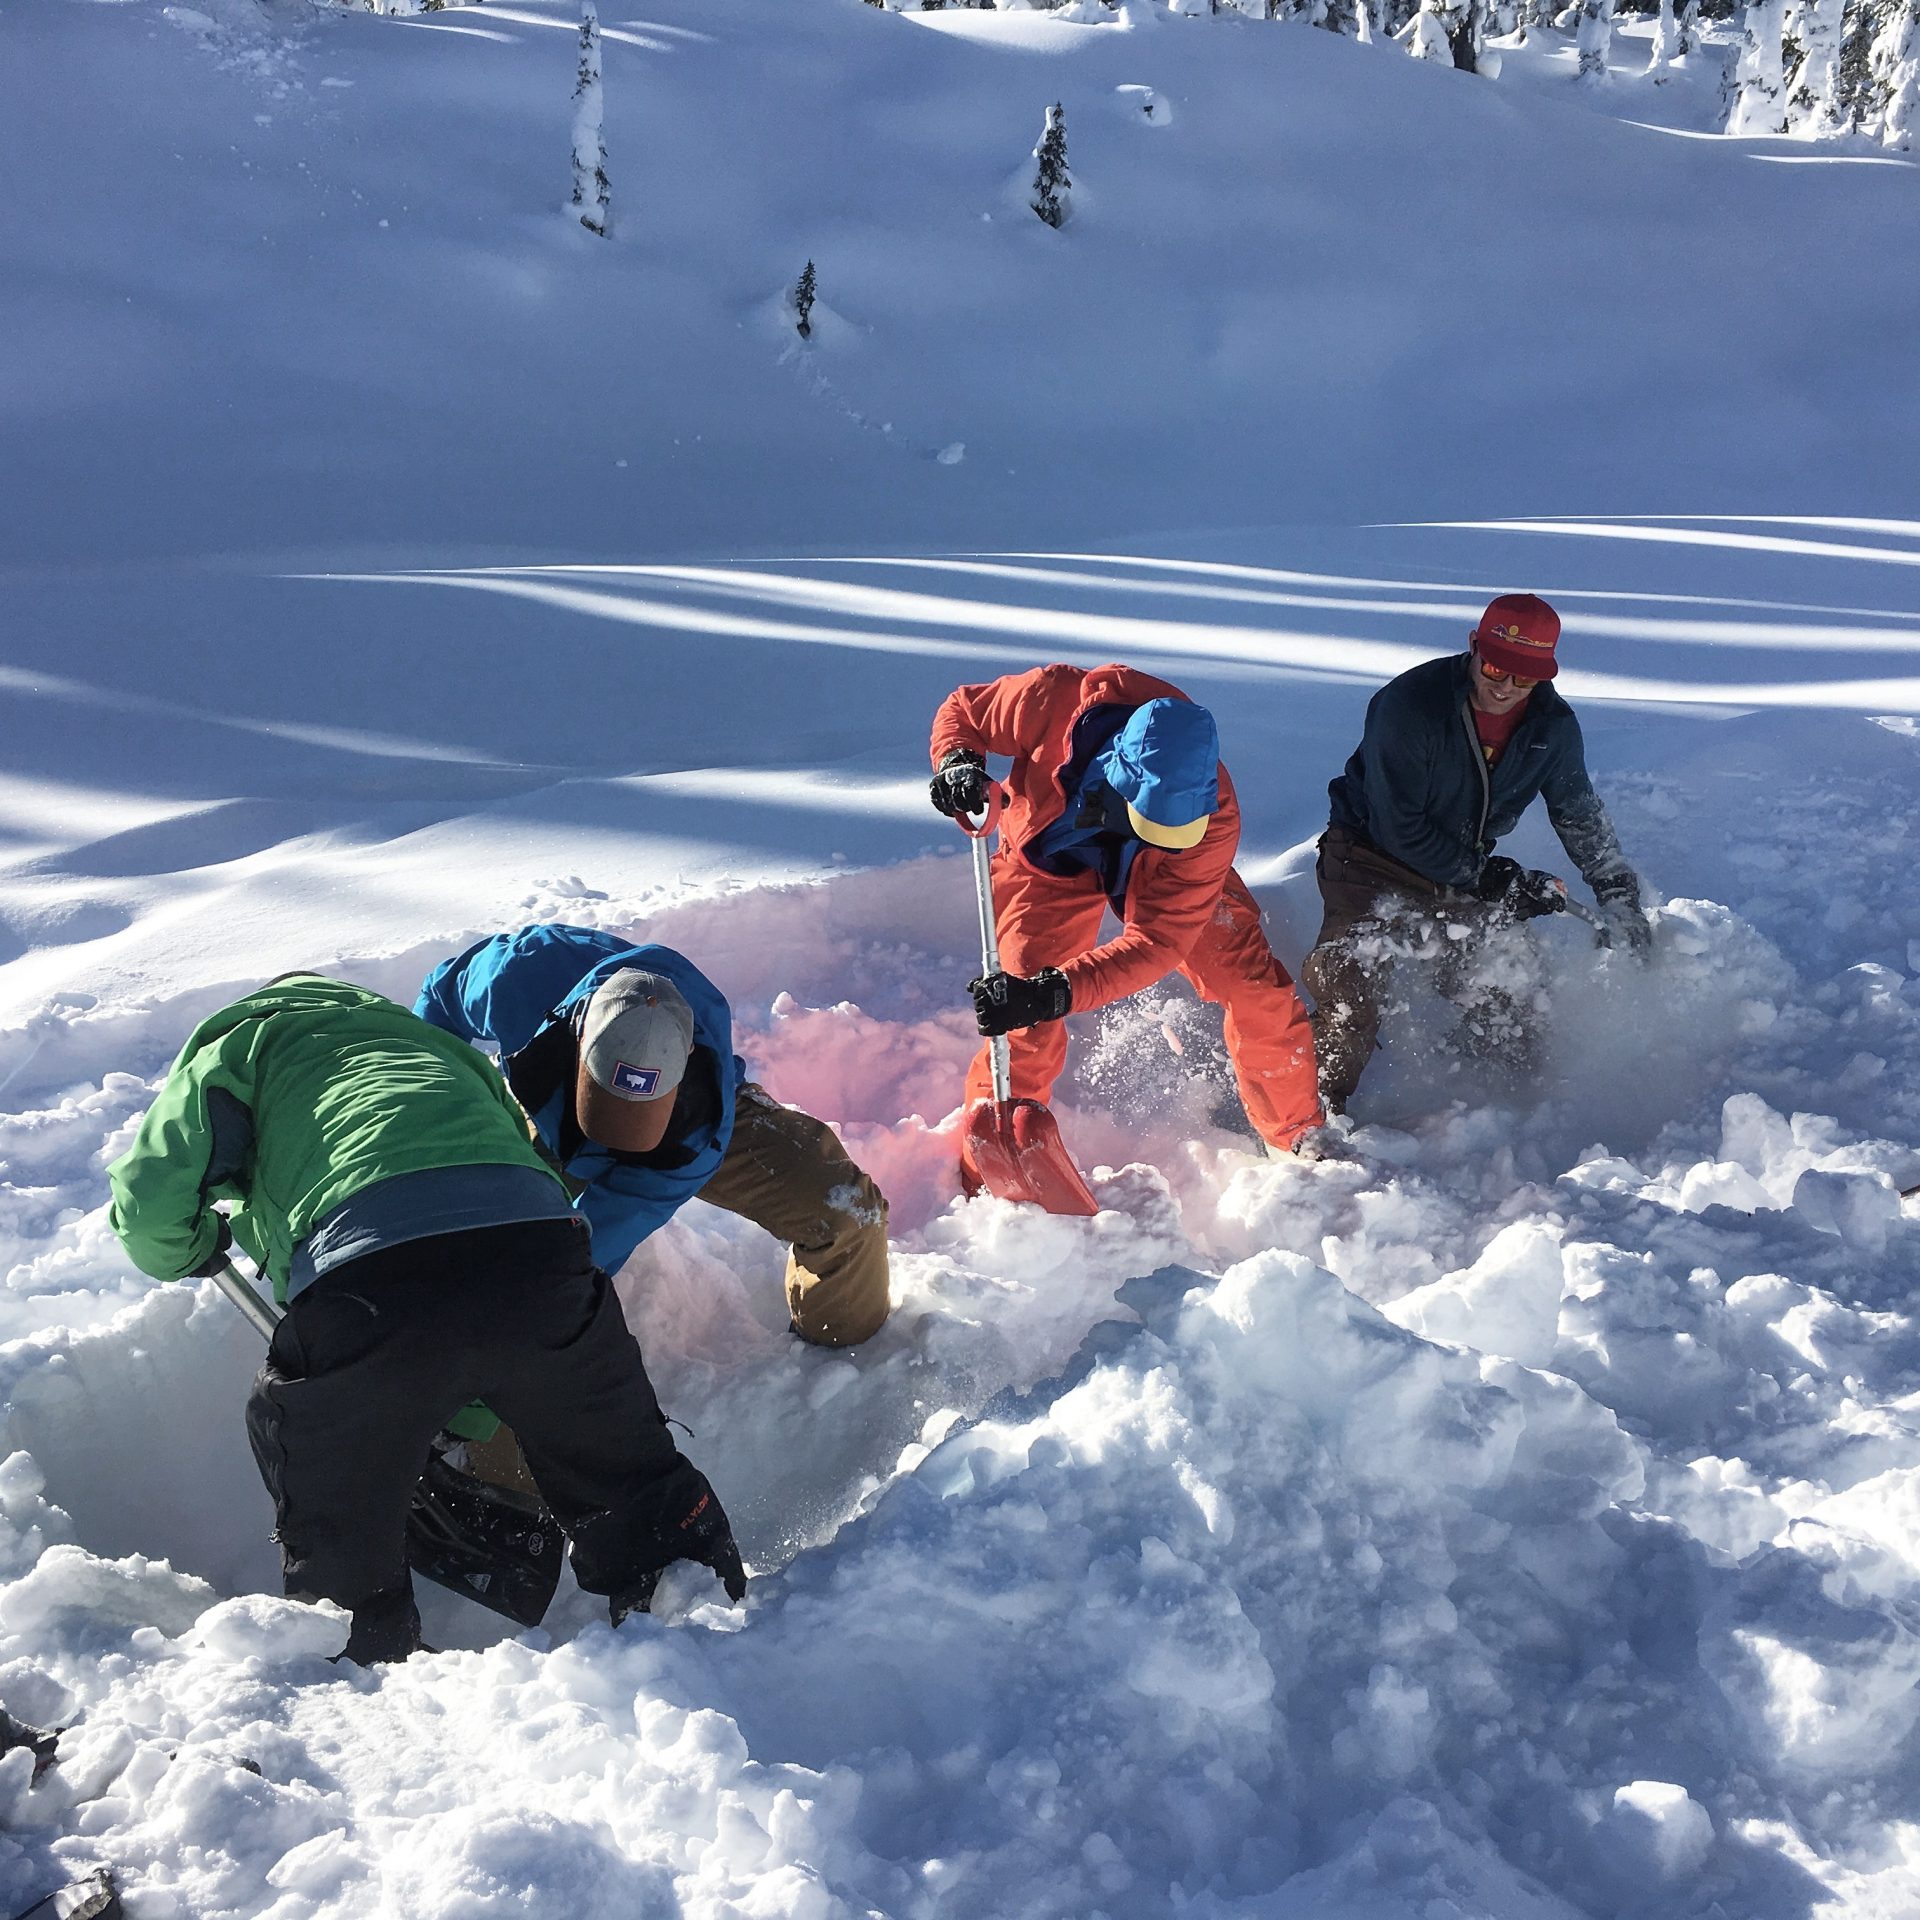 avalanche safety, avalanche rescue course, strike team shovelling